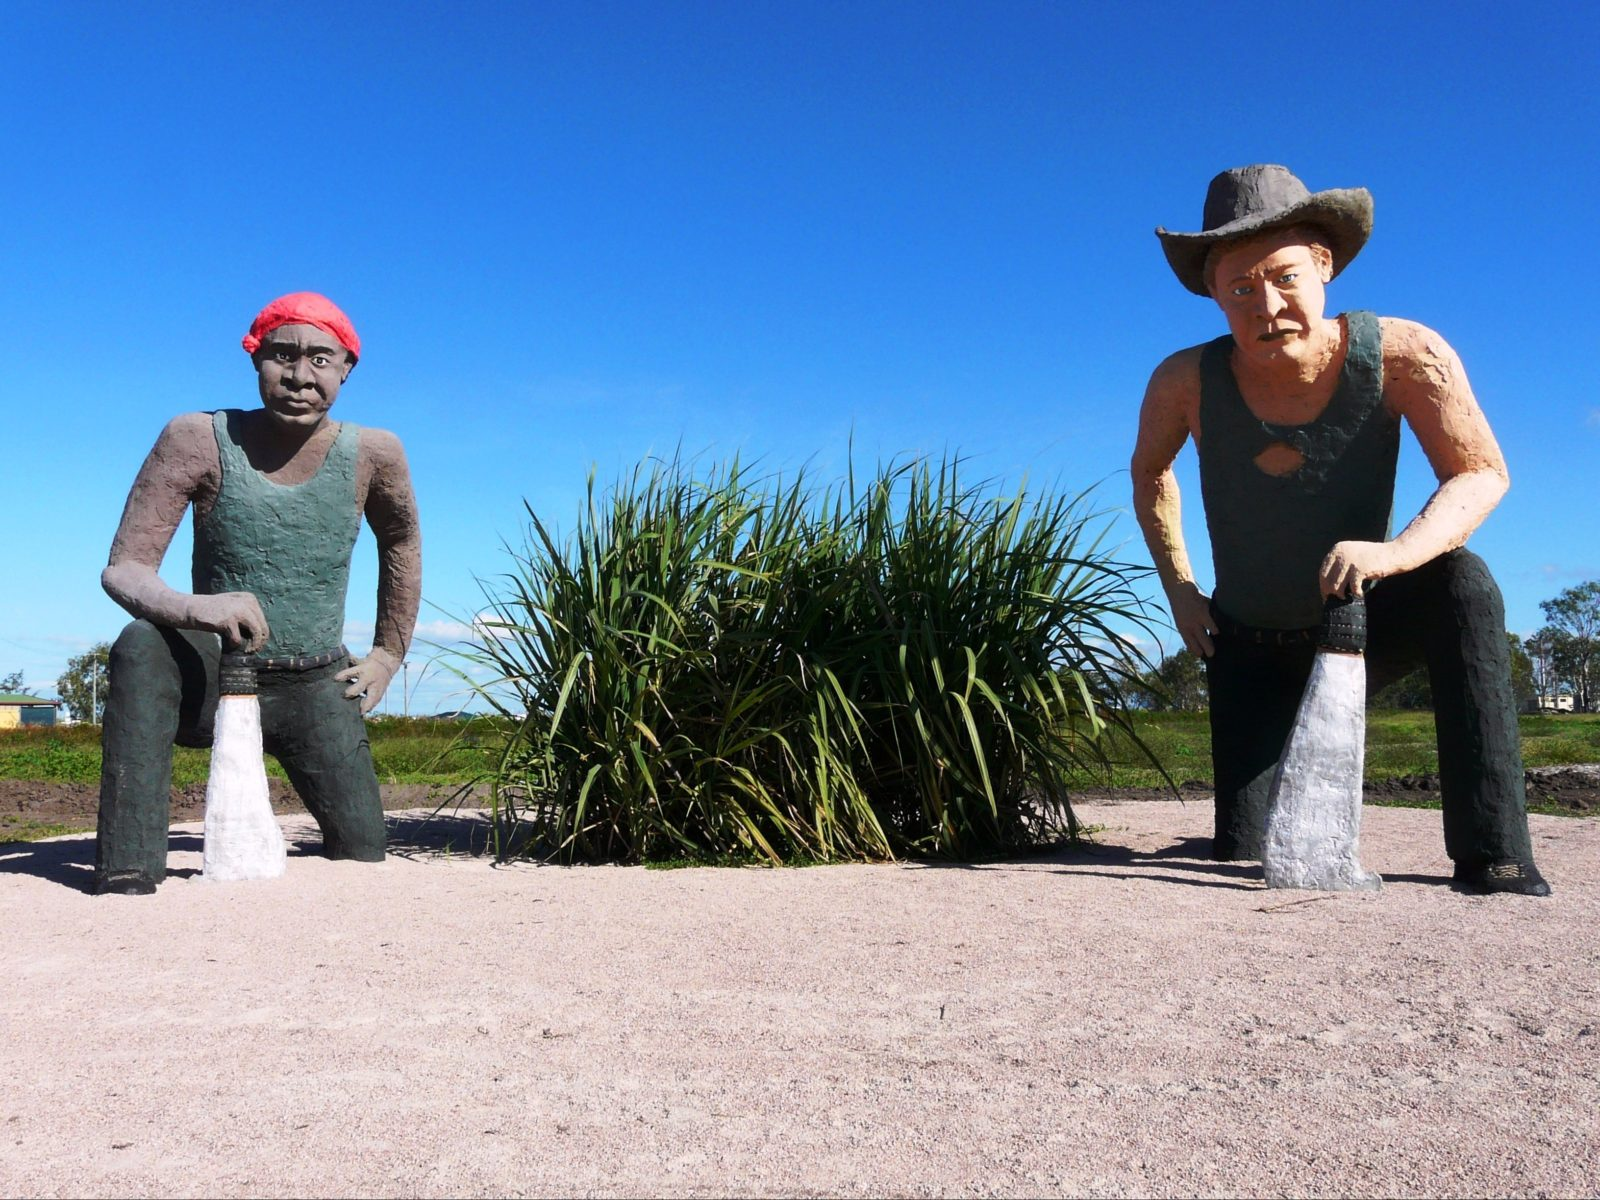 Completed in May 2016, the Hand Cane Cutter statues at the Home Hill Showgrounds are a must see on your visit to the Burdekin region. One hour south of Townsville, bring your camera!